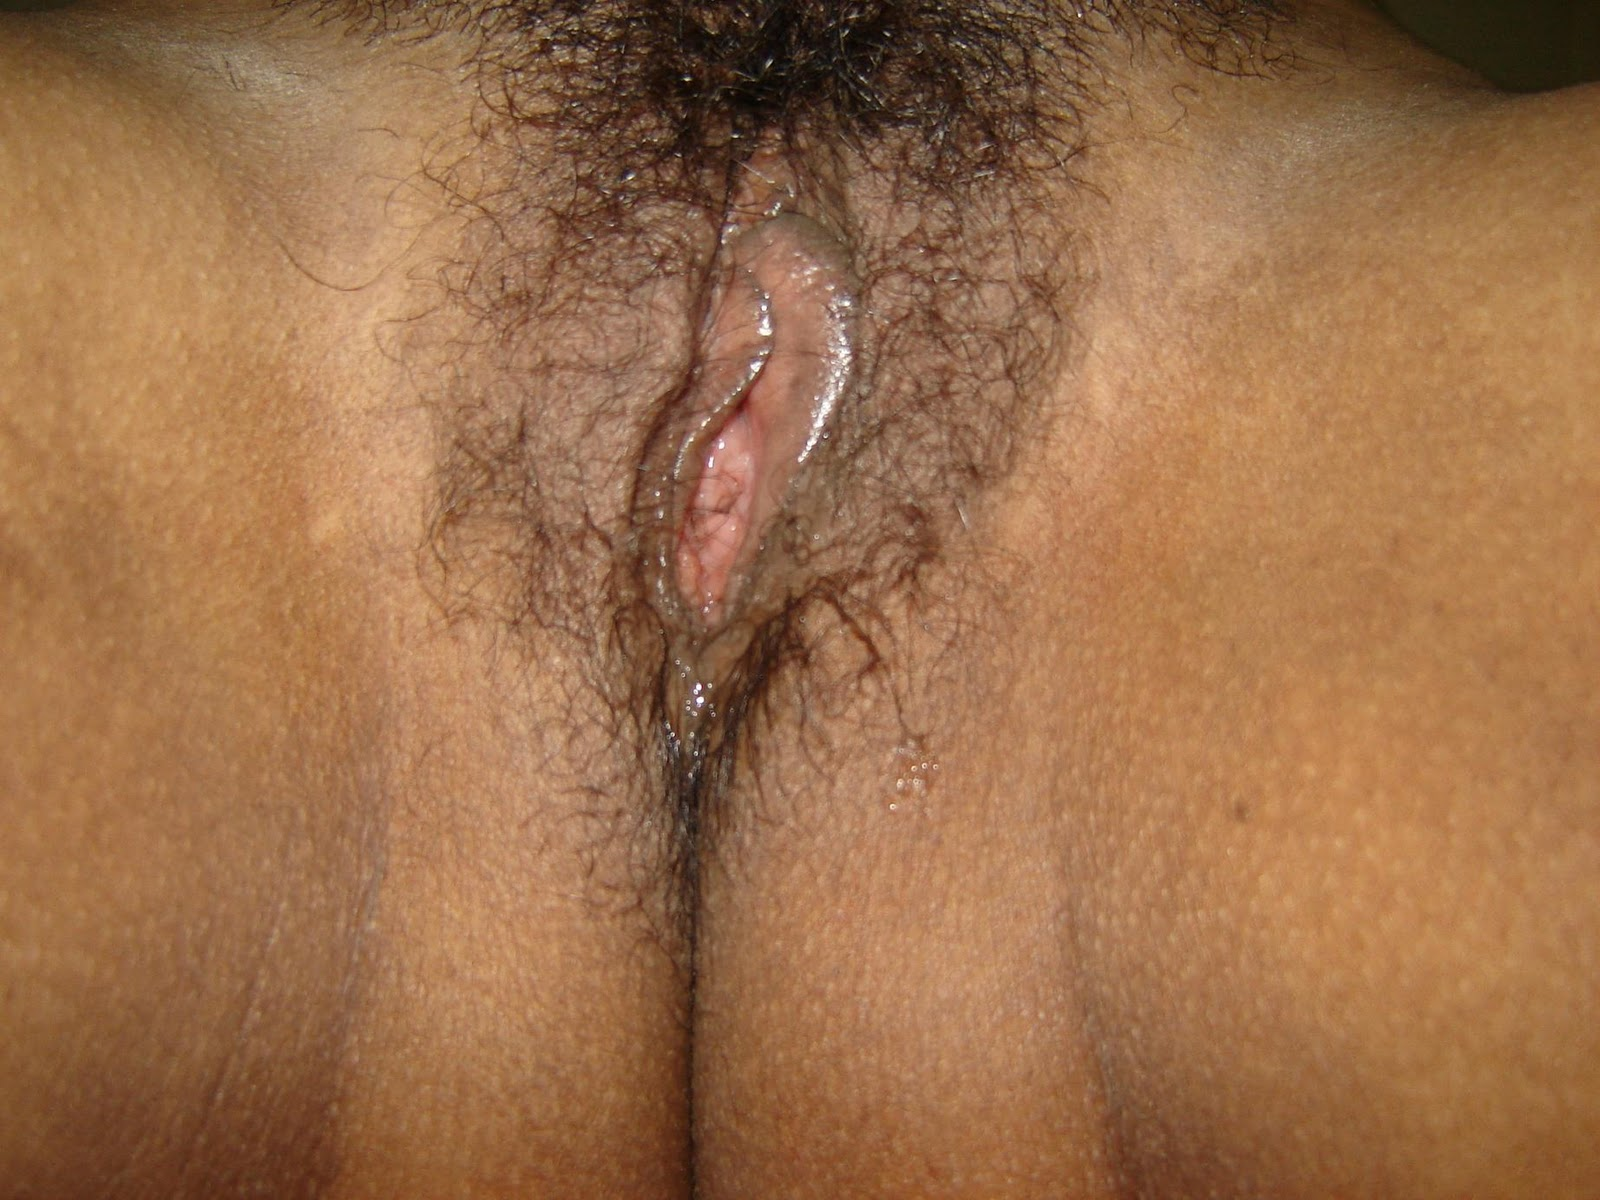 Tamil aunty hairy pussey photos are